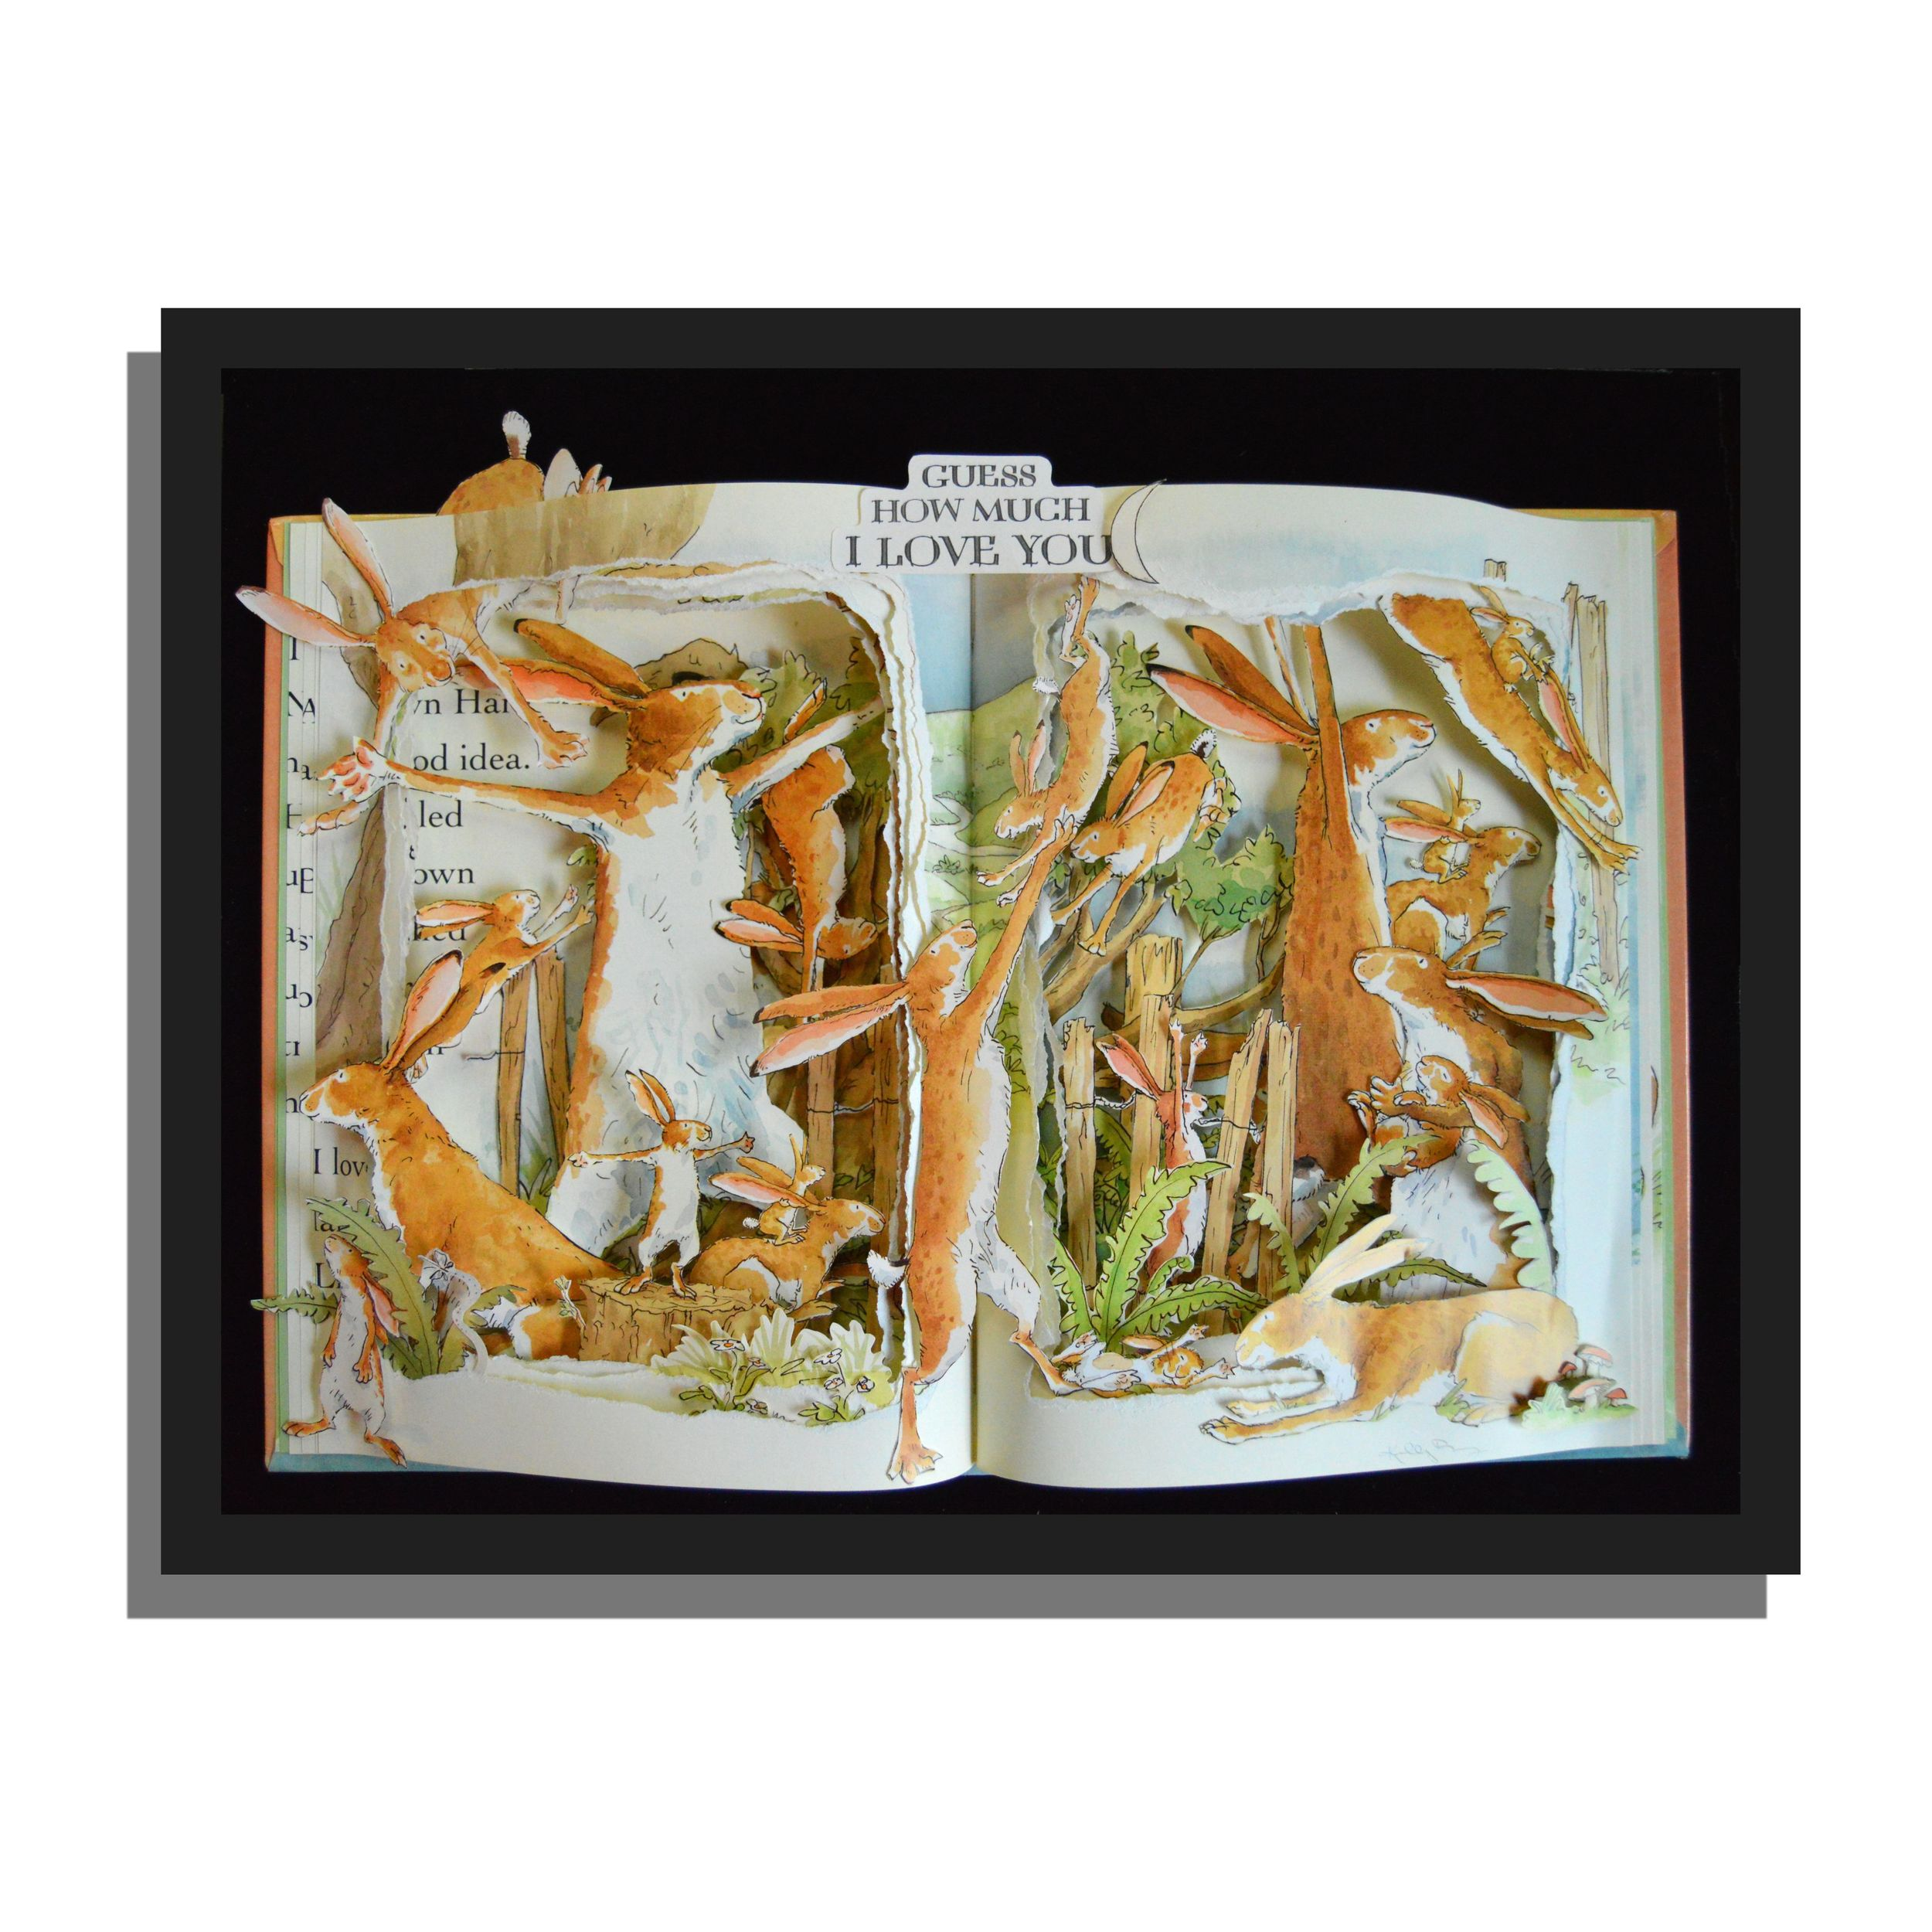 Guess How Much I Love You - Book Sculpture 12x16x3